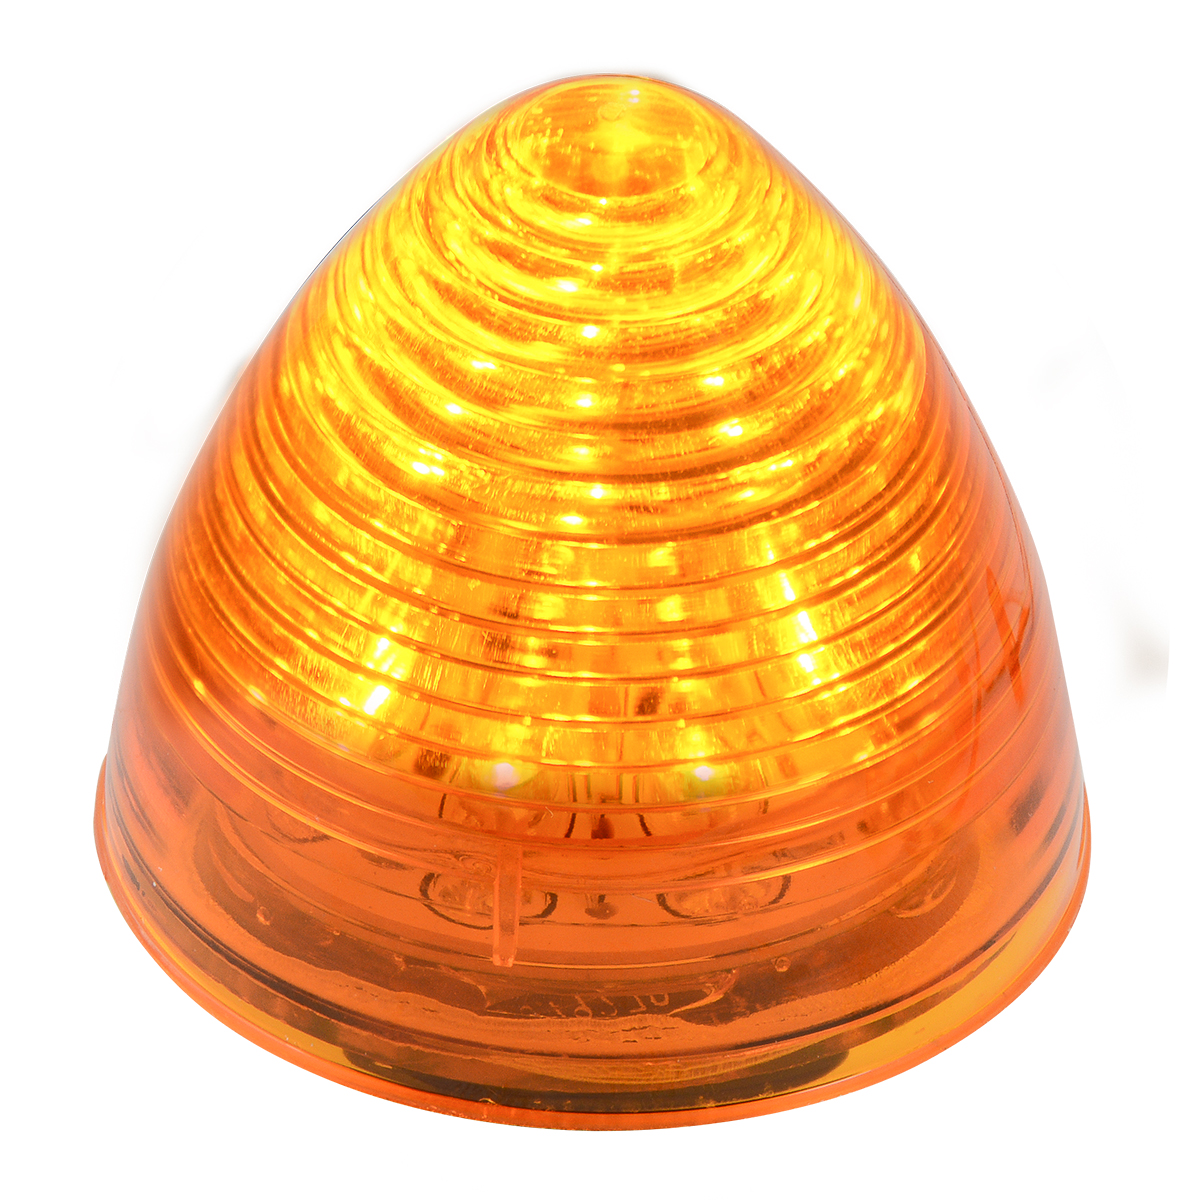 "#79300 2 ½"" LED Beehive Amber/Amber Light"